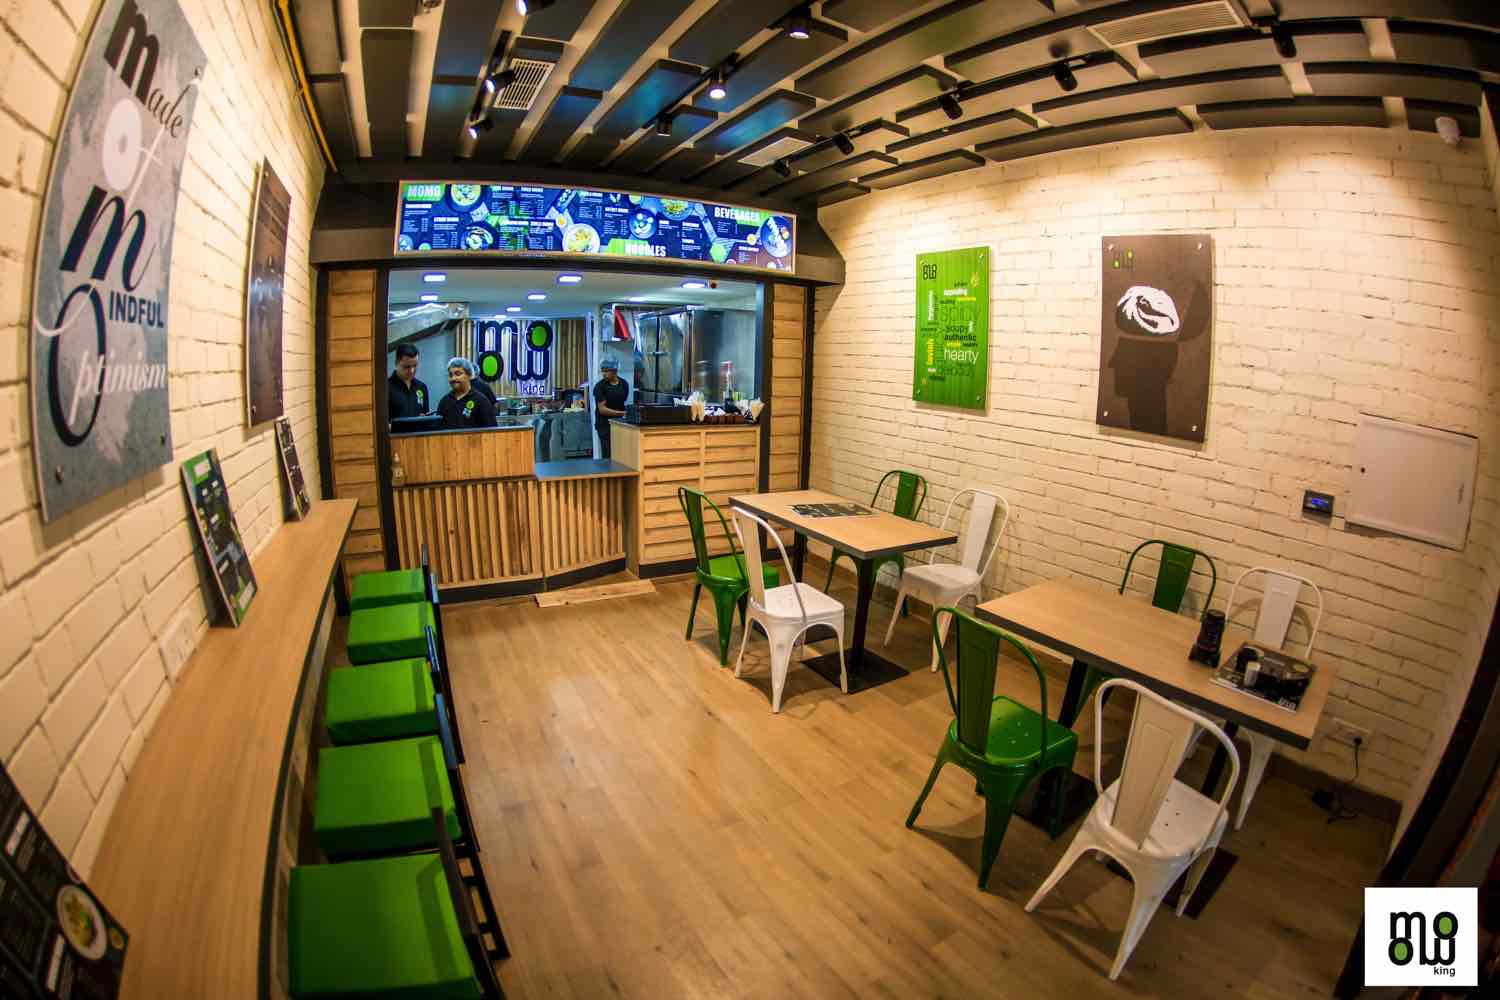 Momo King Restaurant in Gurgaon